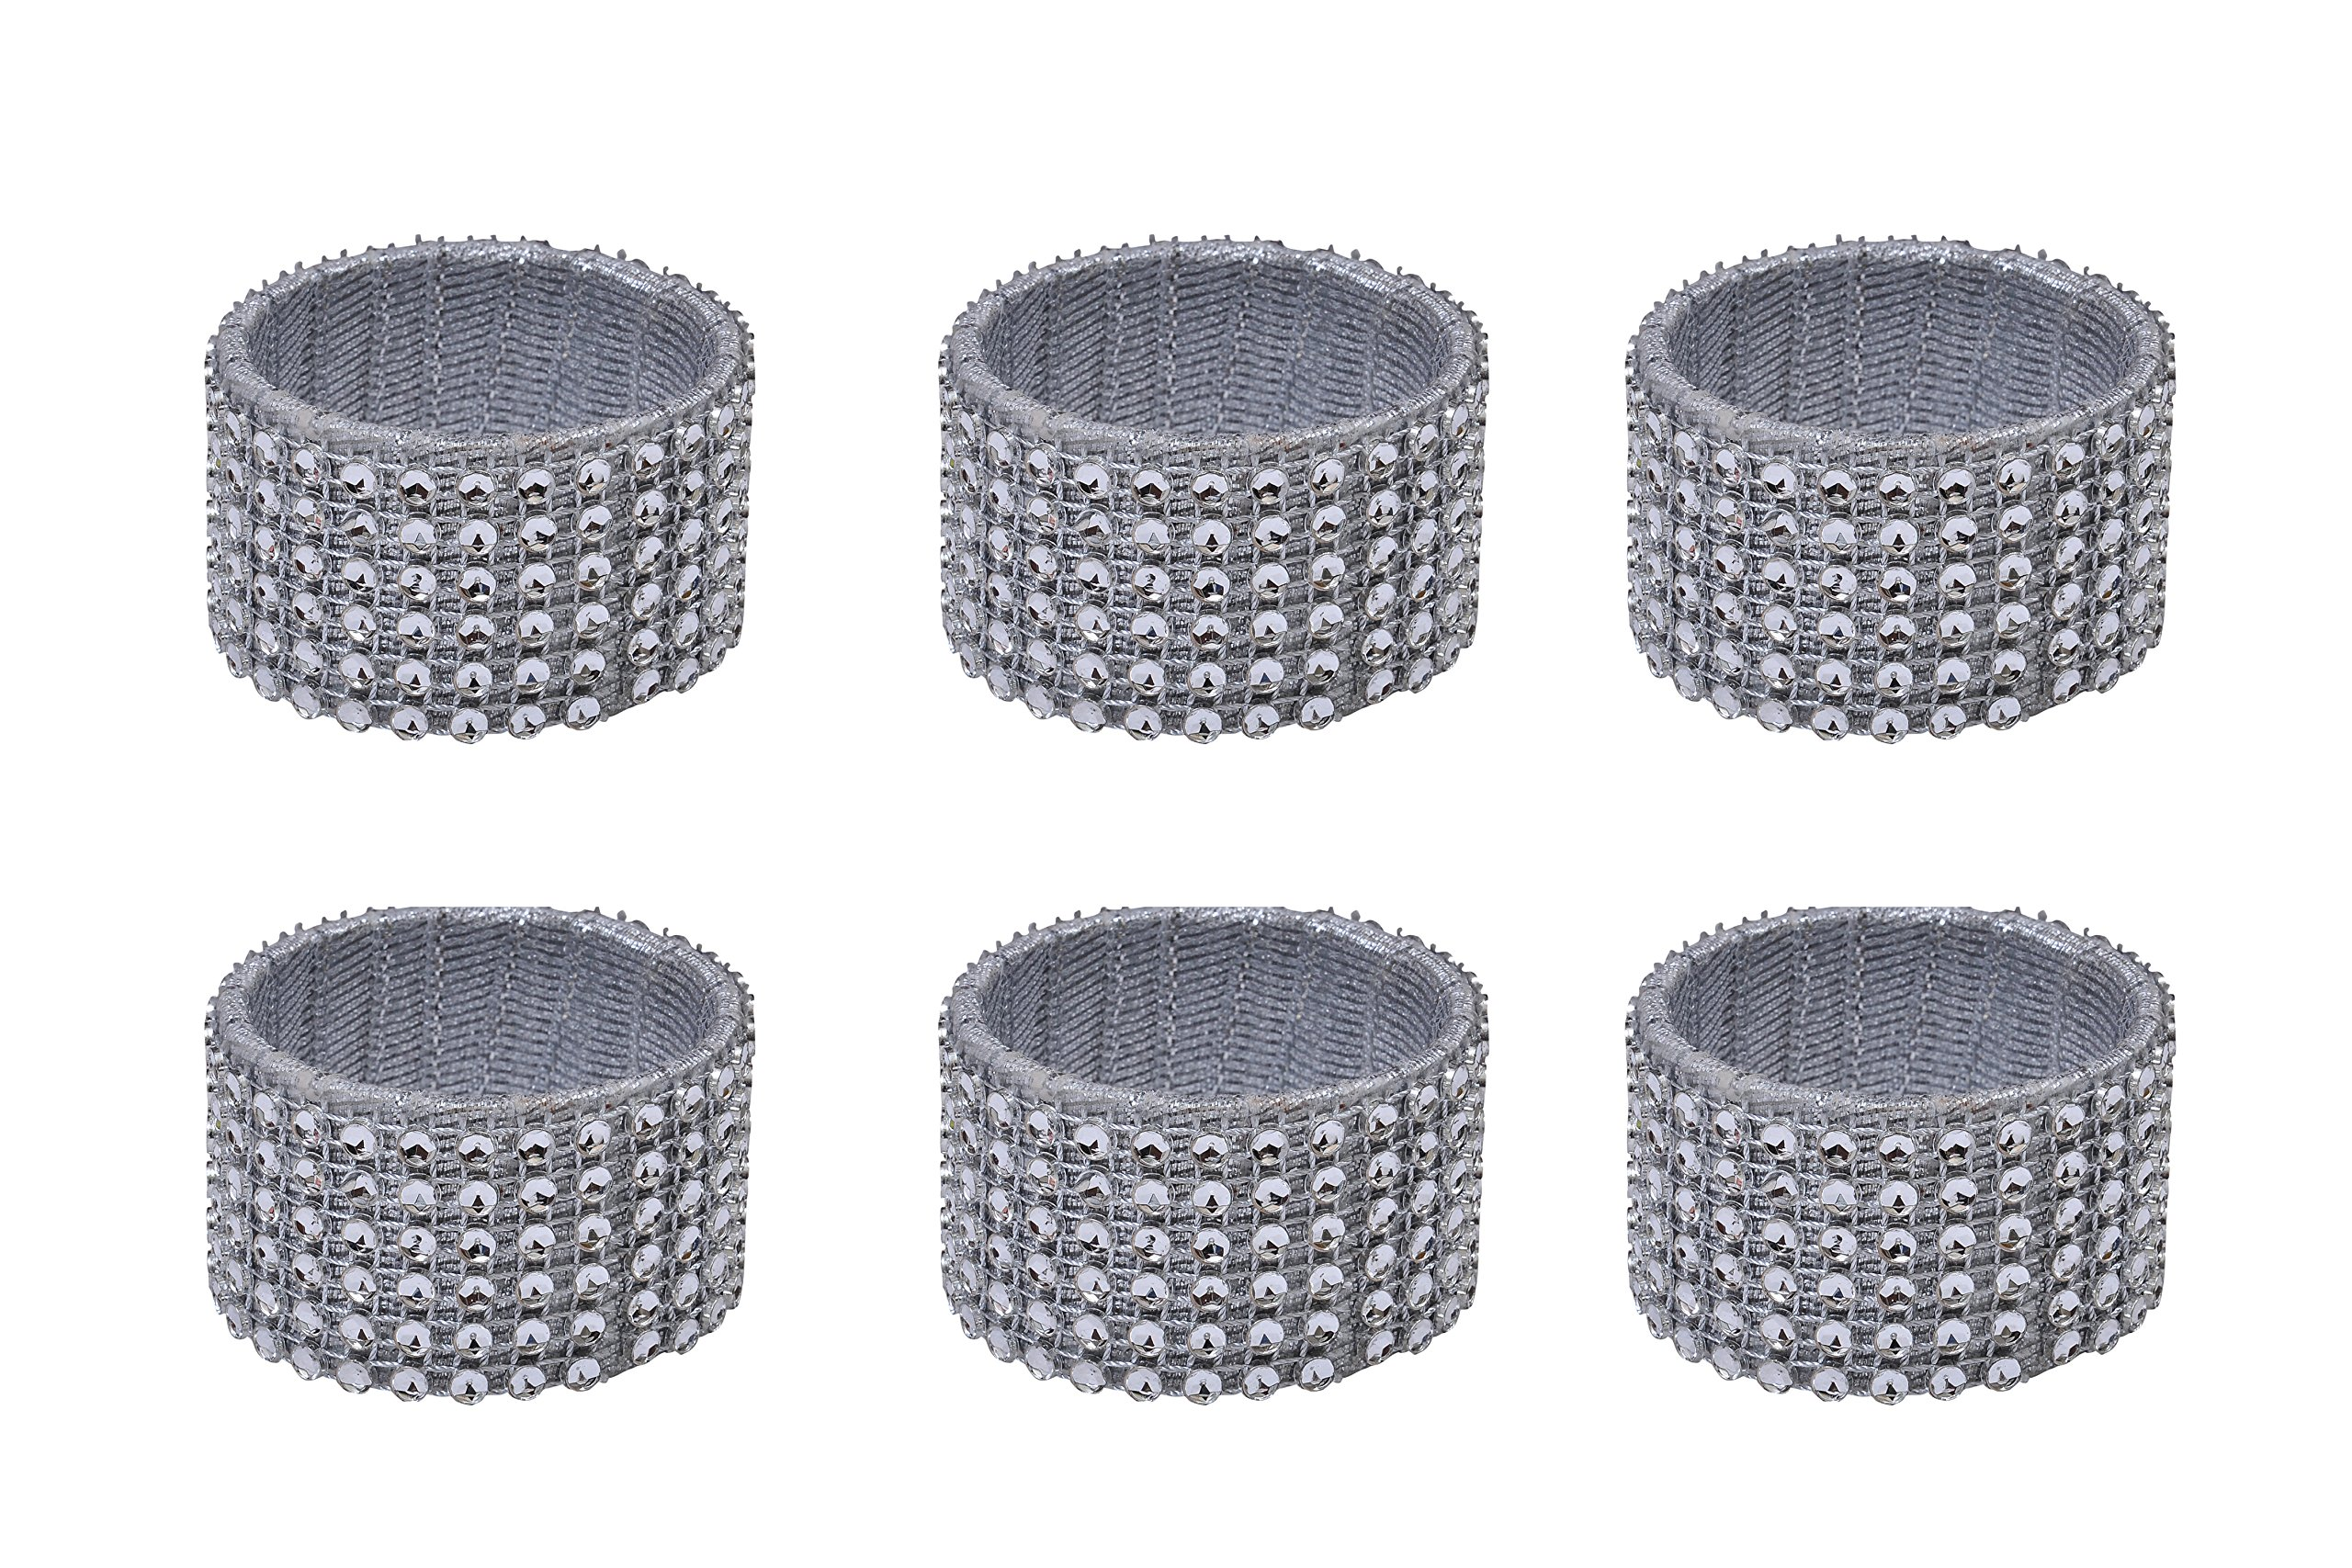 Yourtablecloth Napkin Rings or Napkin Holders – Enhanced & Appealing Table Décor for Weddings, Parties, Christmas, New Year or Every Day Use – Diamond Napkin Rings – Set of 6